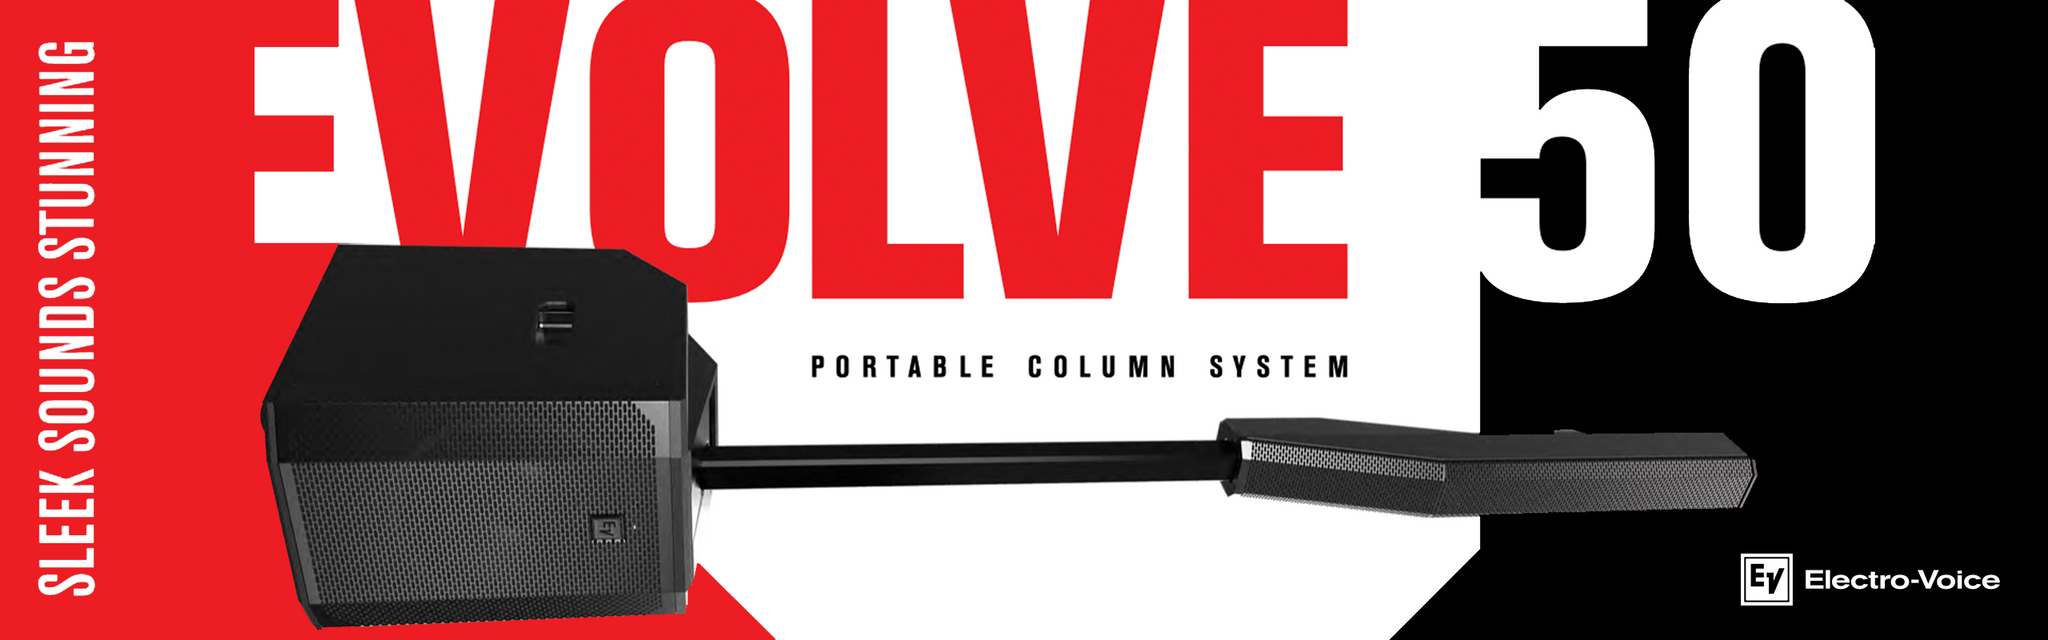 Electro-Voice Evolve 50 Product Link